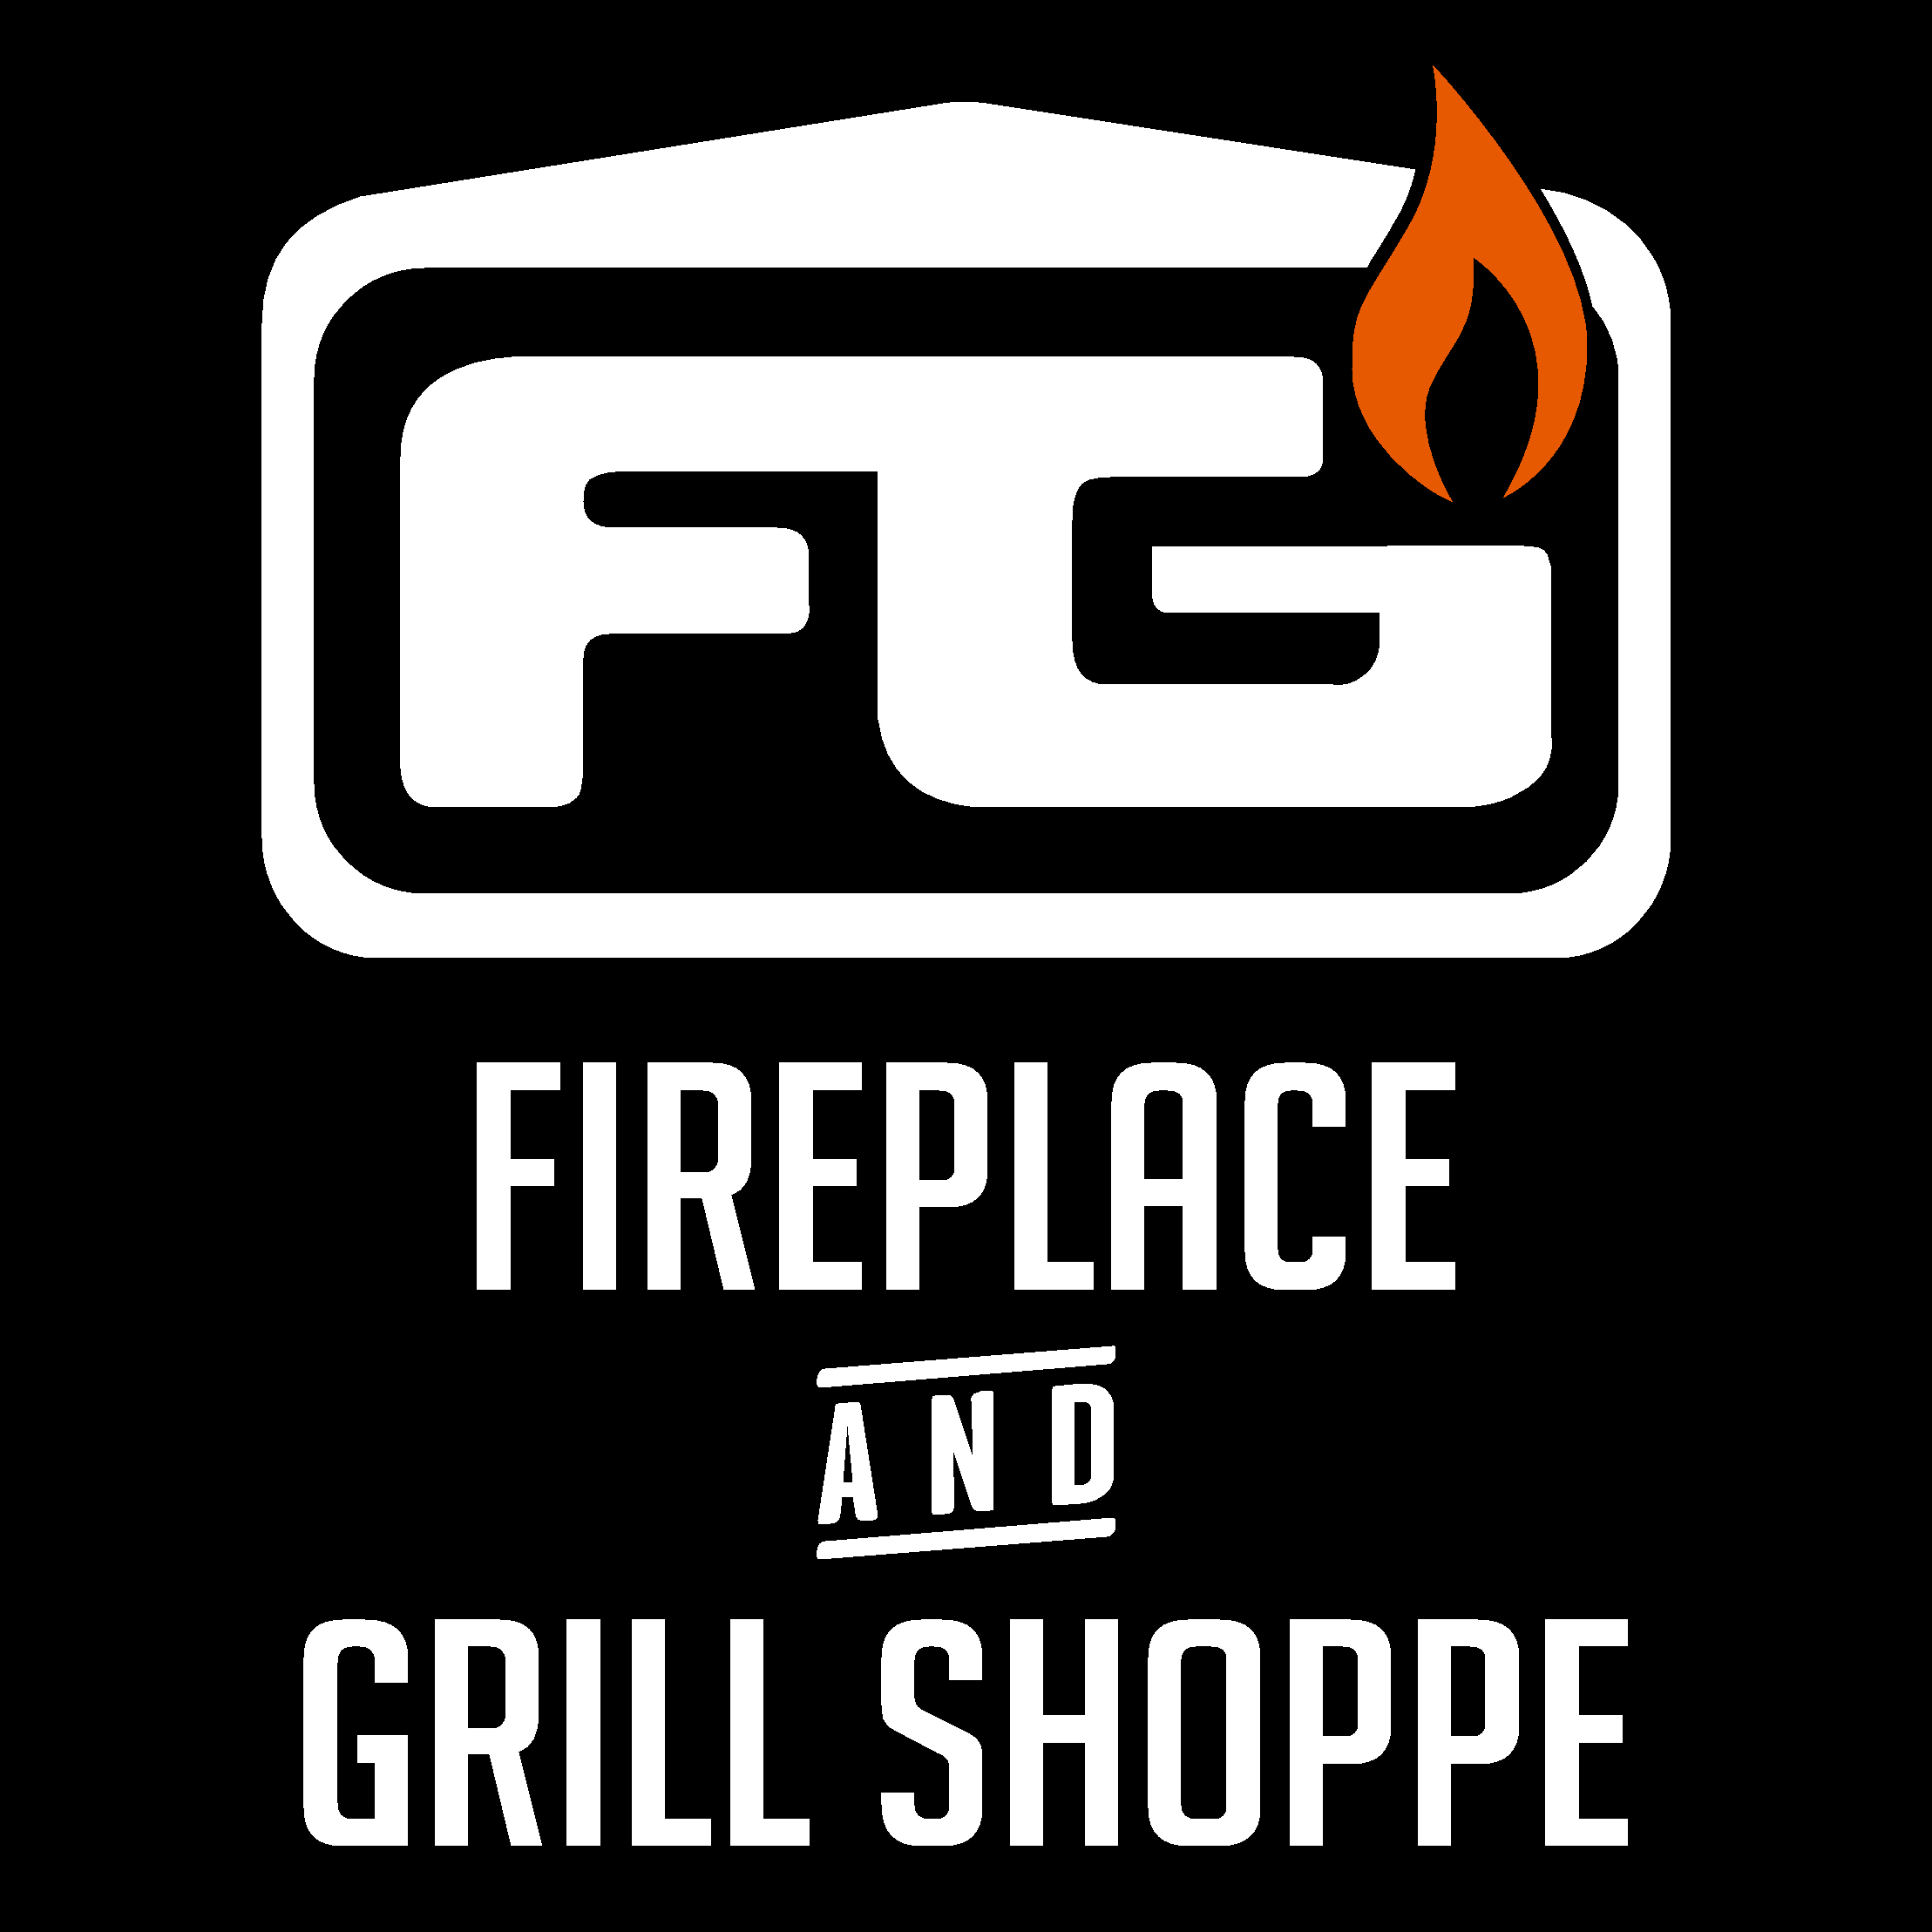 Fireplace & Grill Shoppe